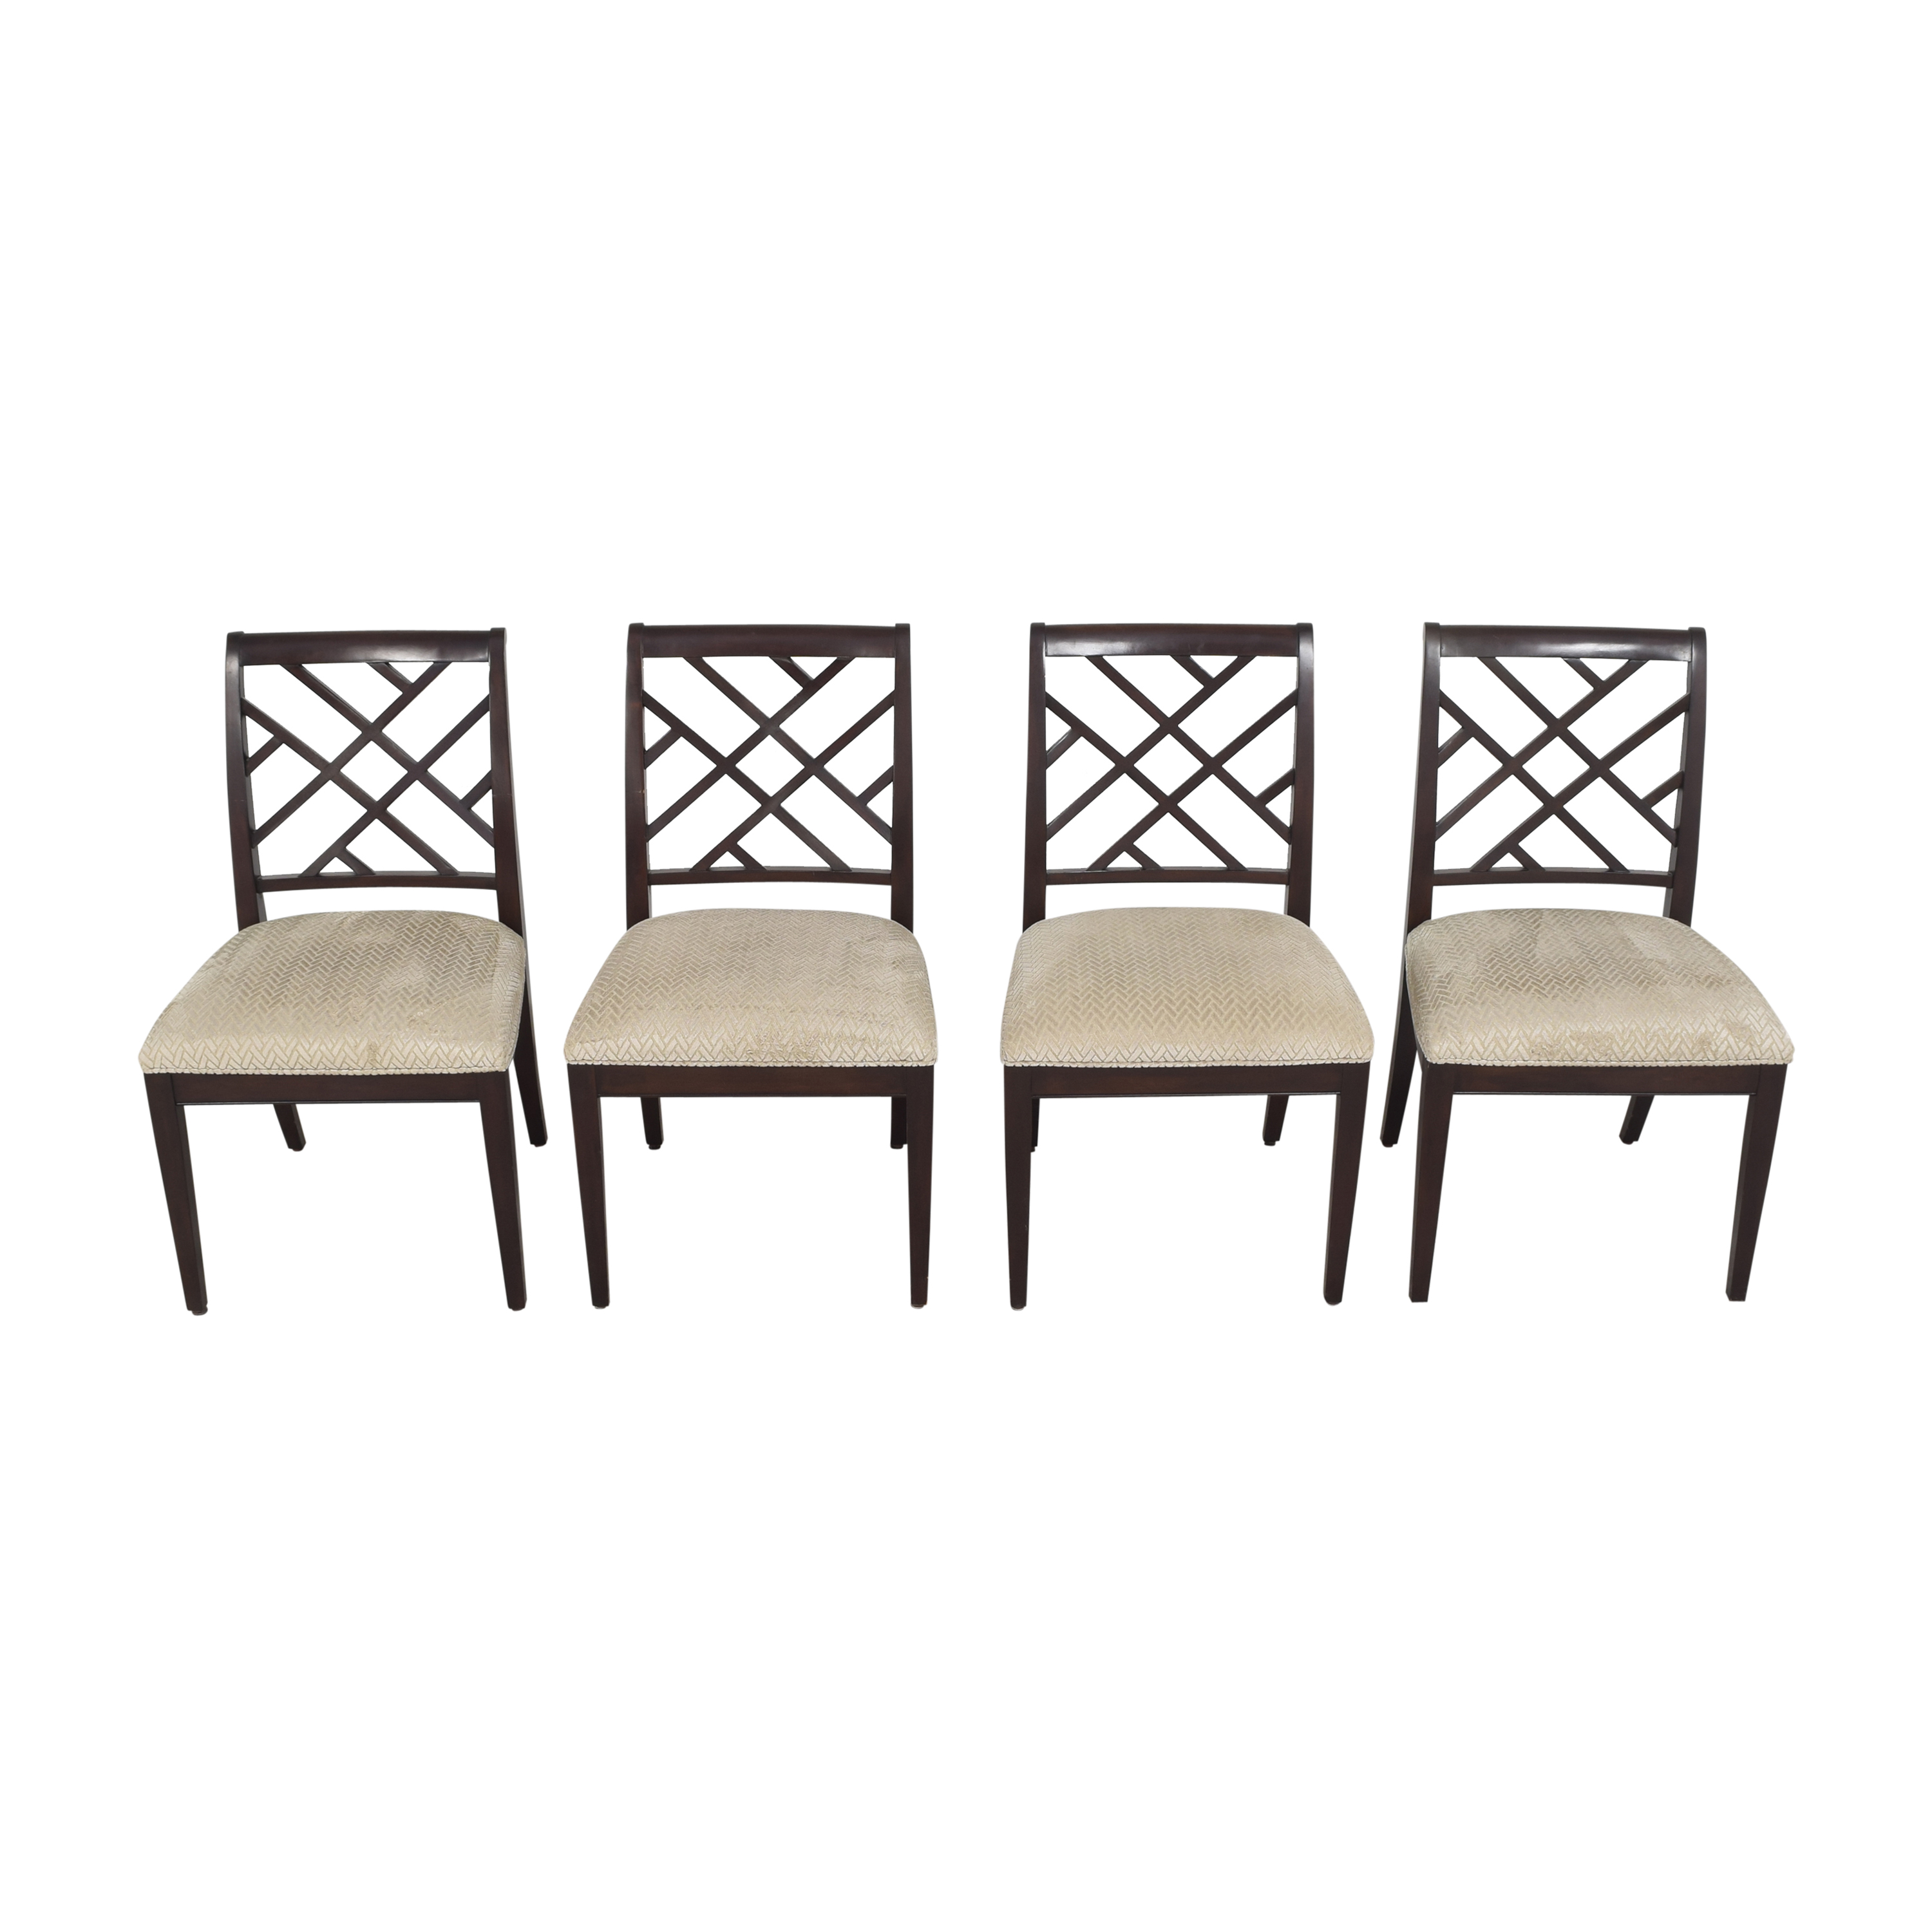 Ethan Allen Ethan Allen Dining Side Chairs discount